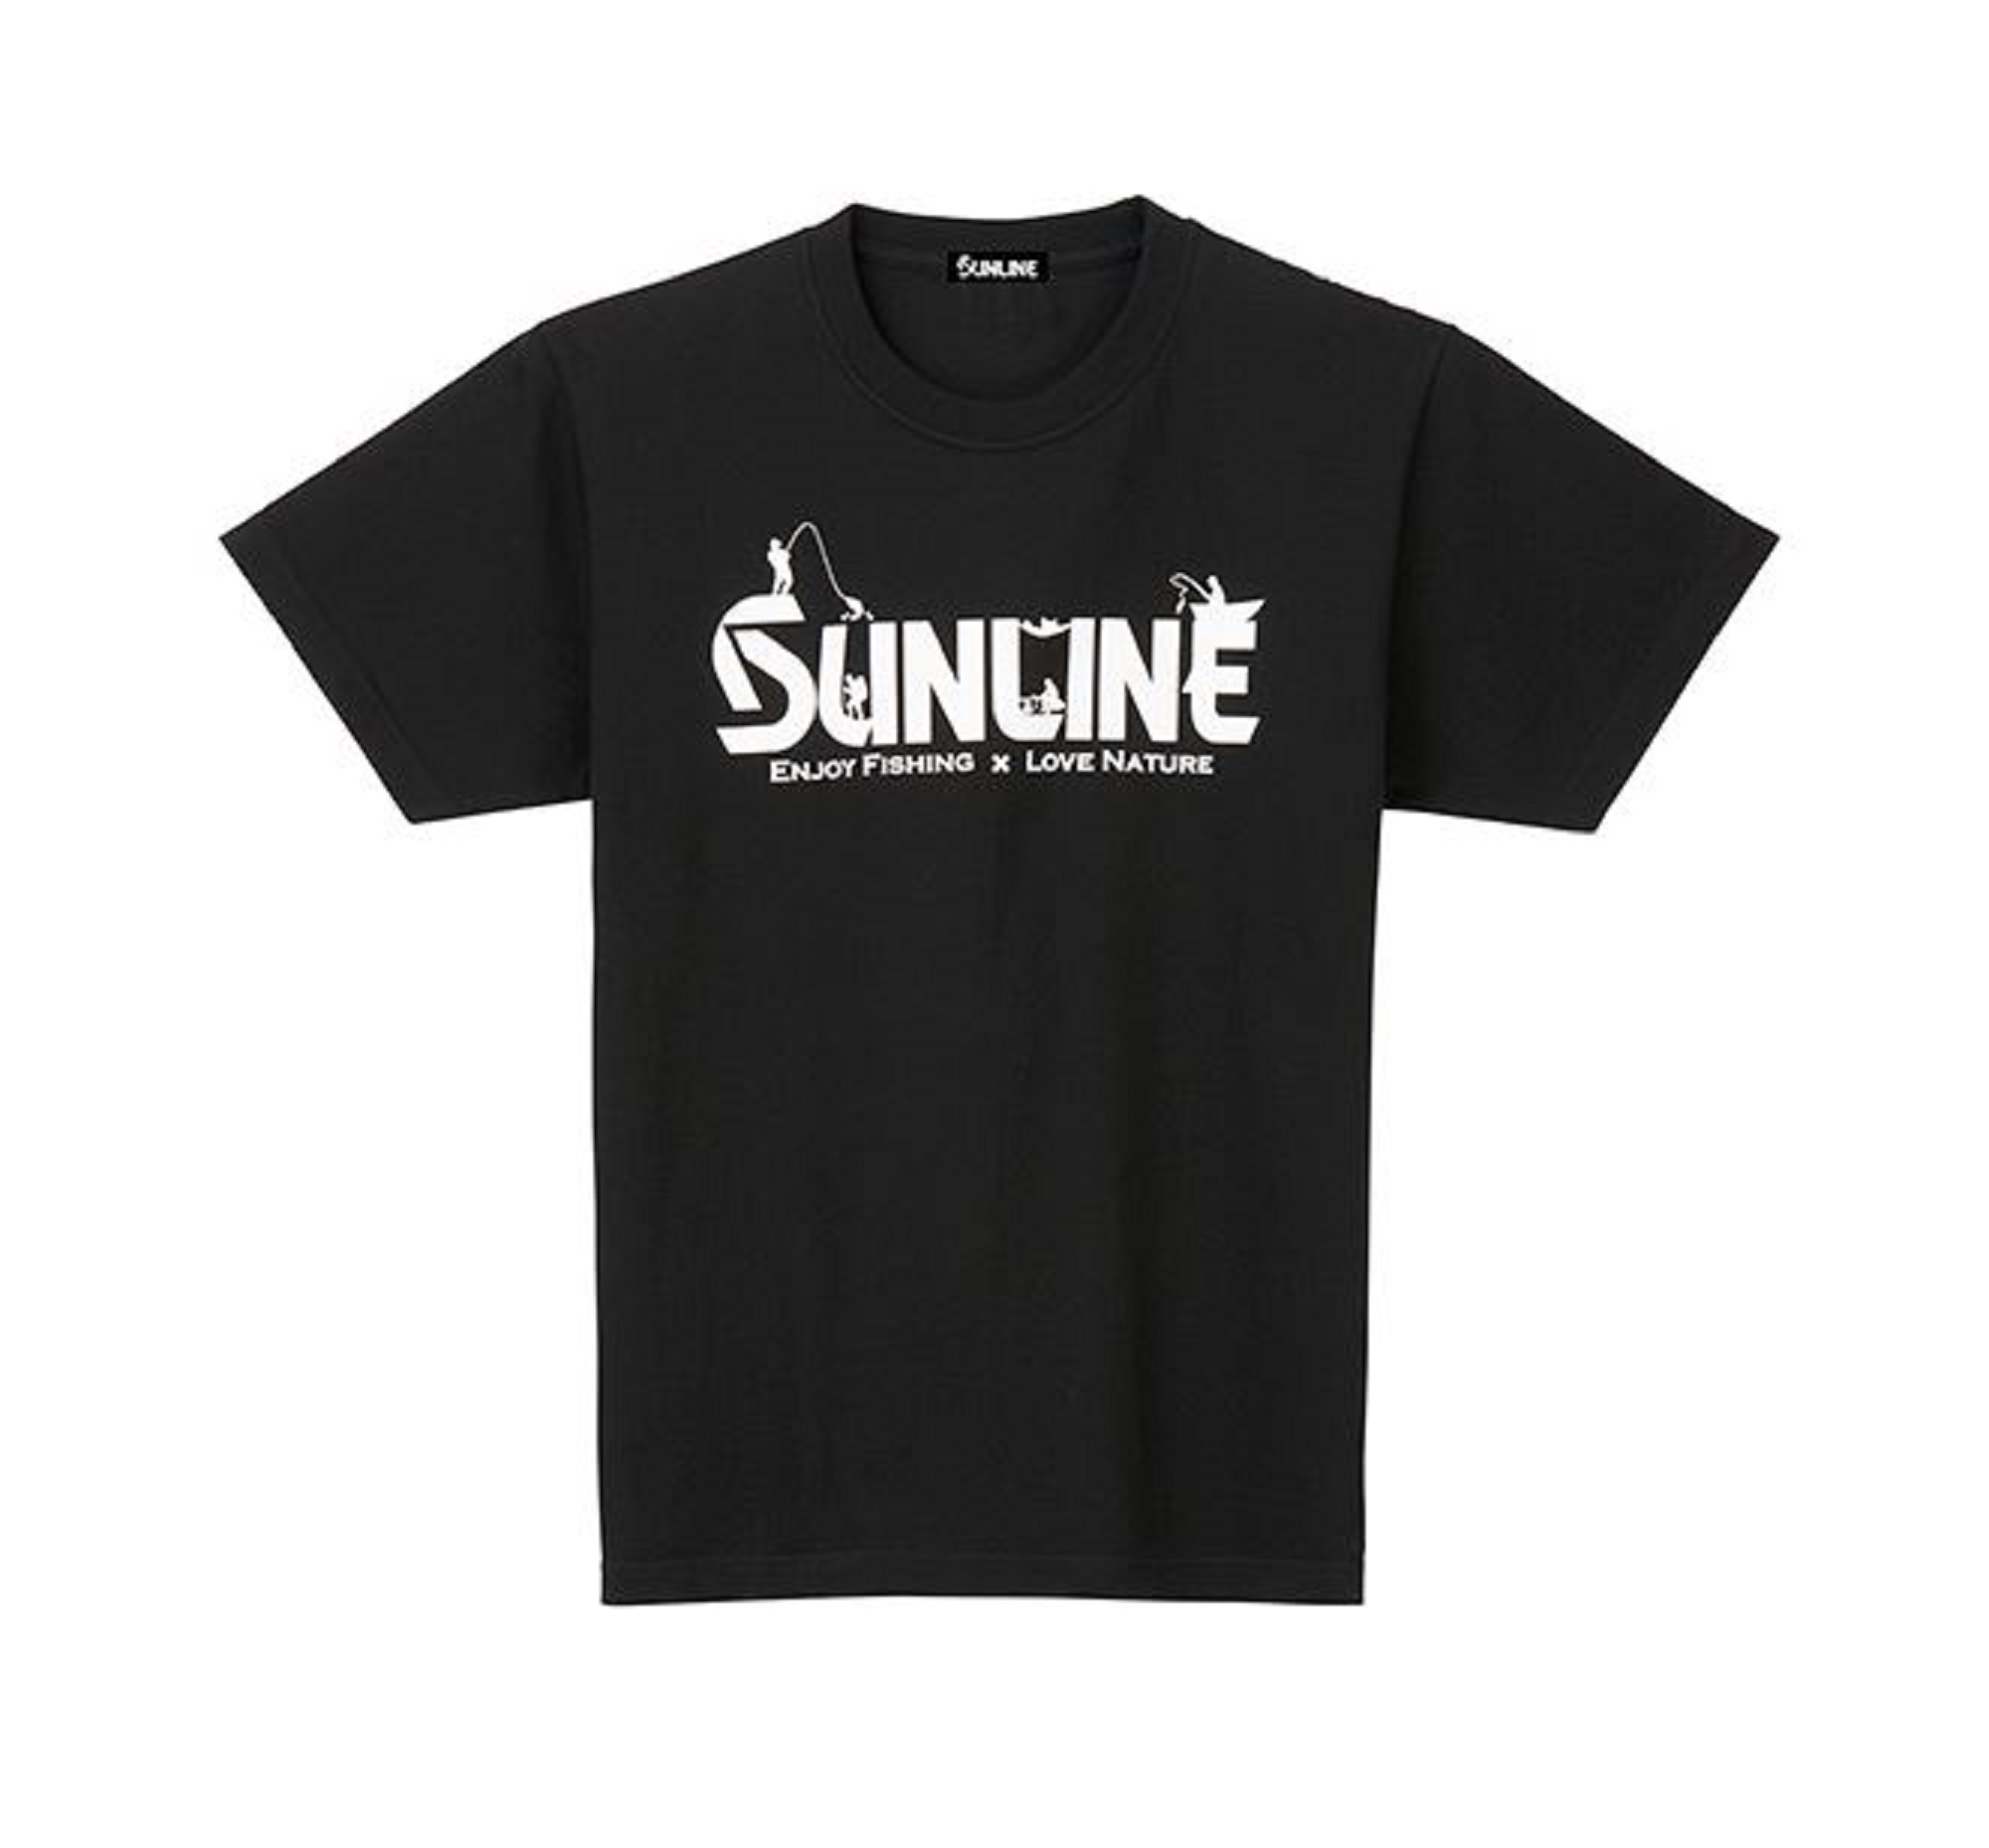 Sunline SUW-15020T T-Shirt Cotton Short Sleeve Black Size M (3033)